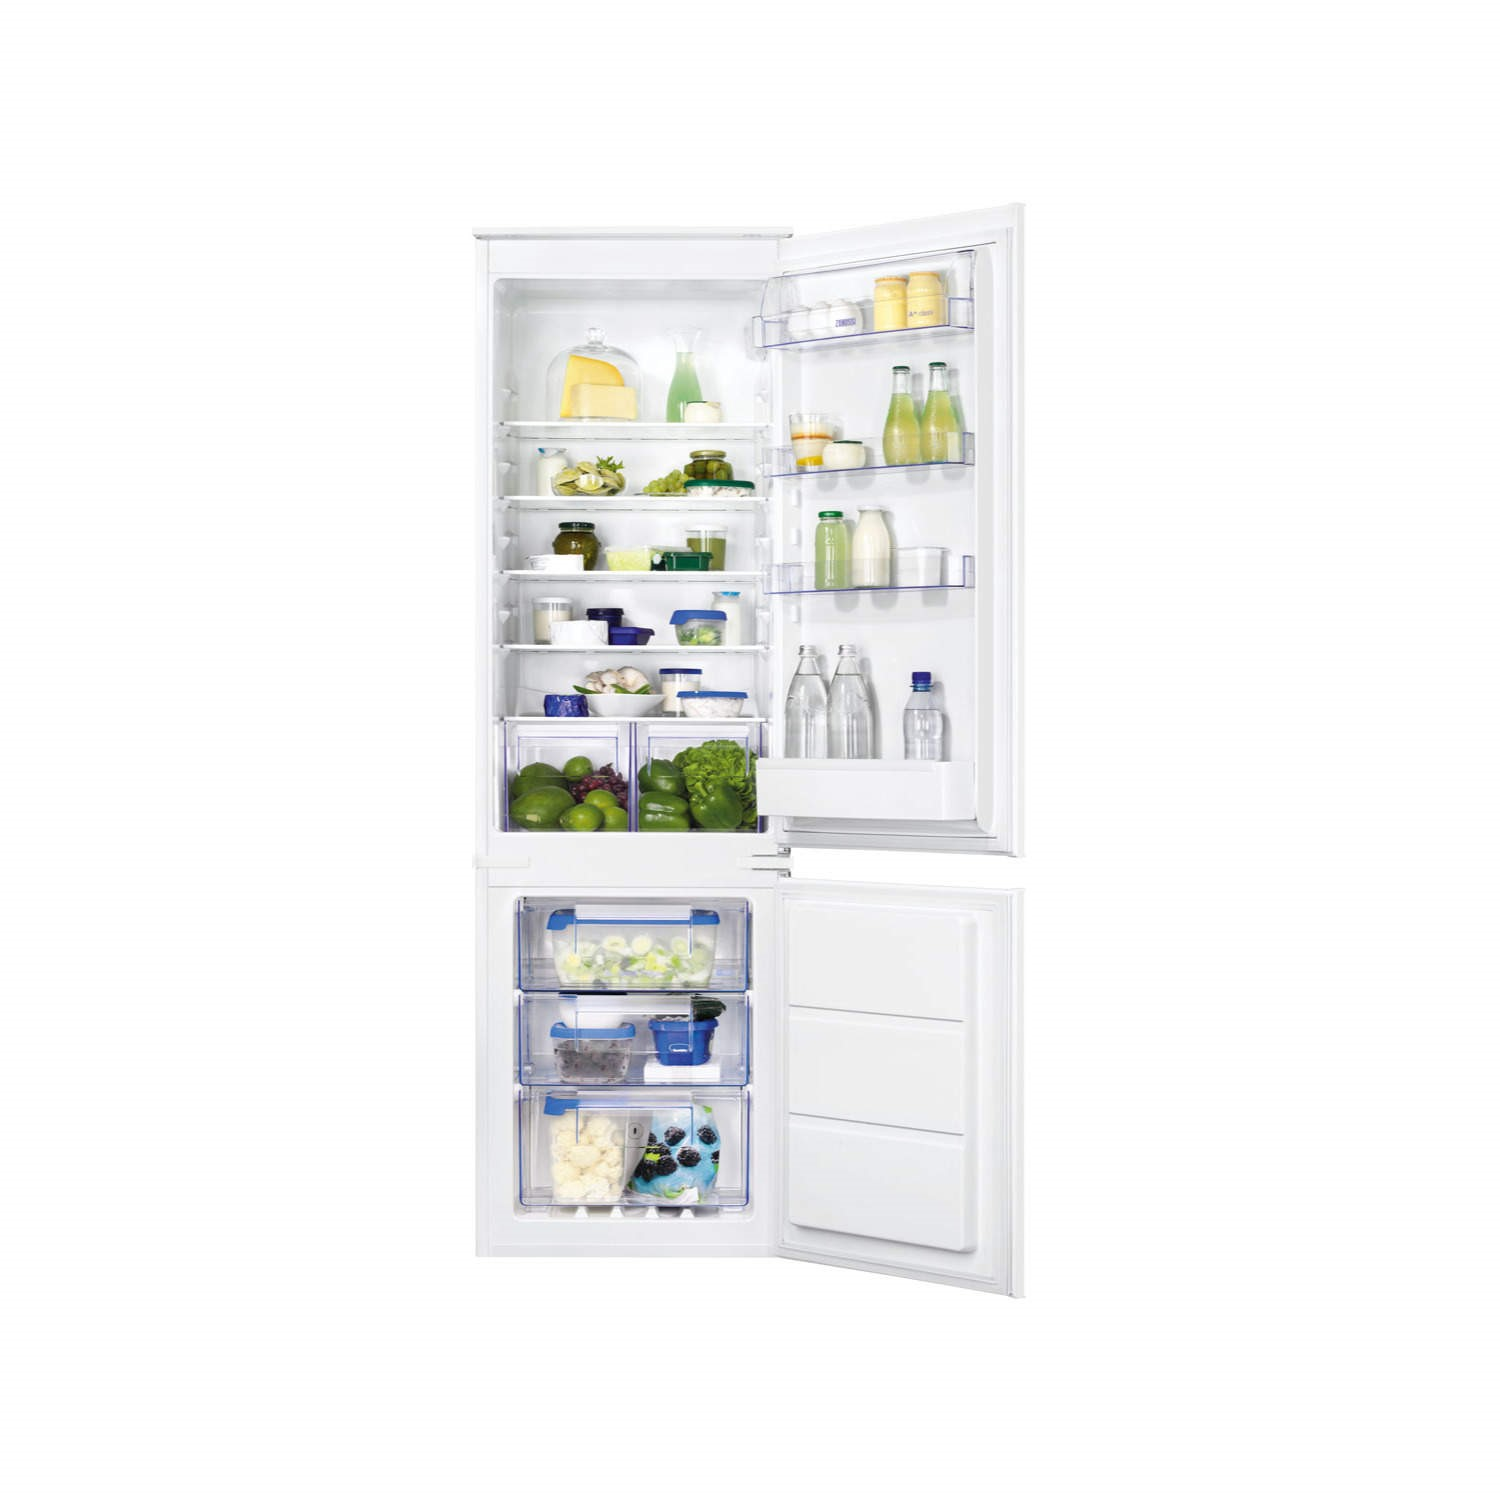 zanussi zbb28651sa 54cm wide frost free integrated upright fridge freezer white - Frost Free Freezer